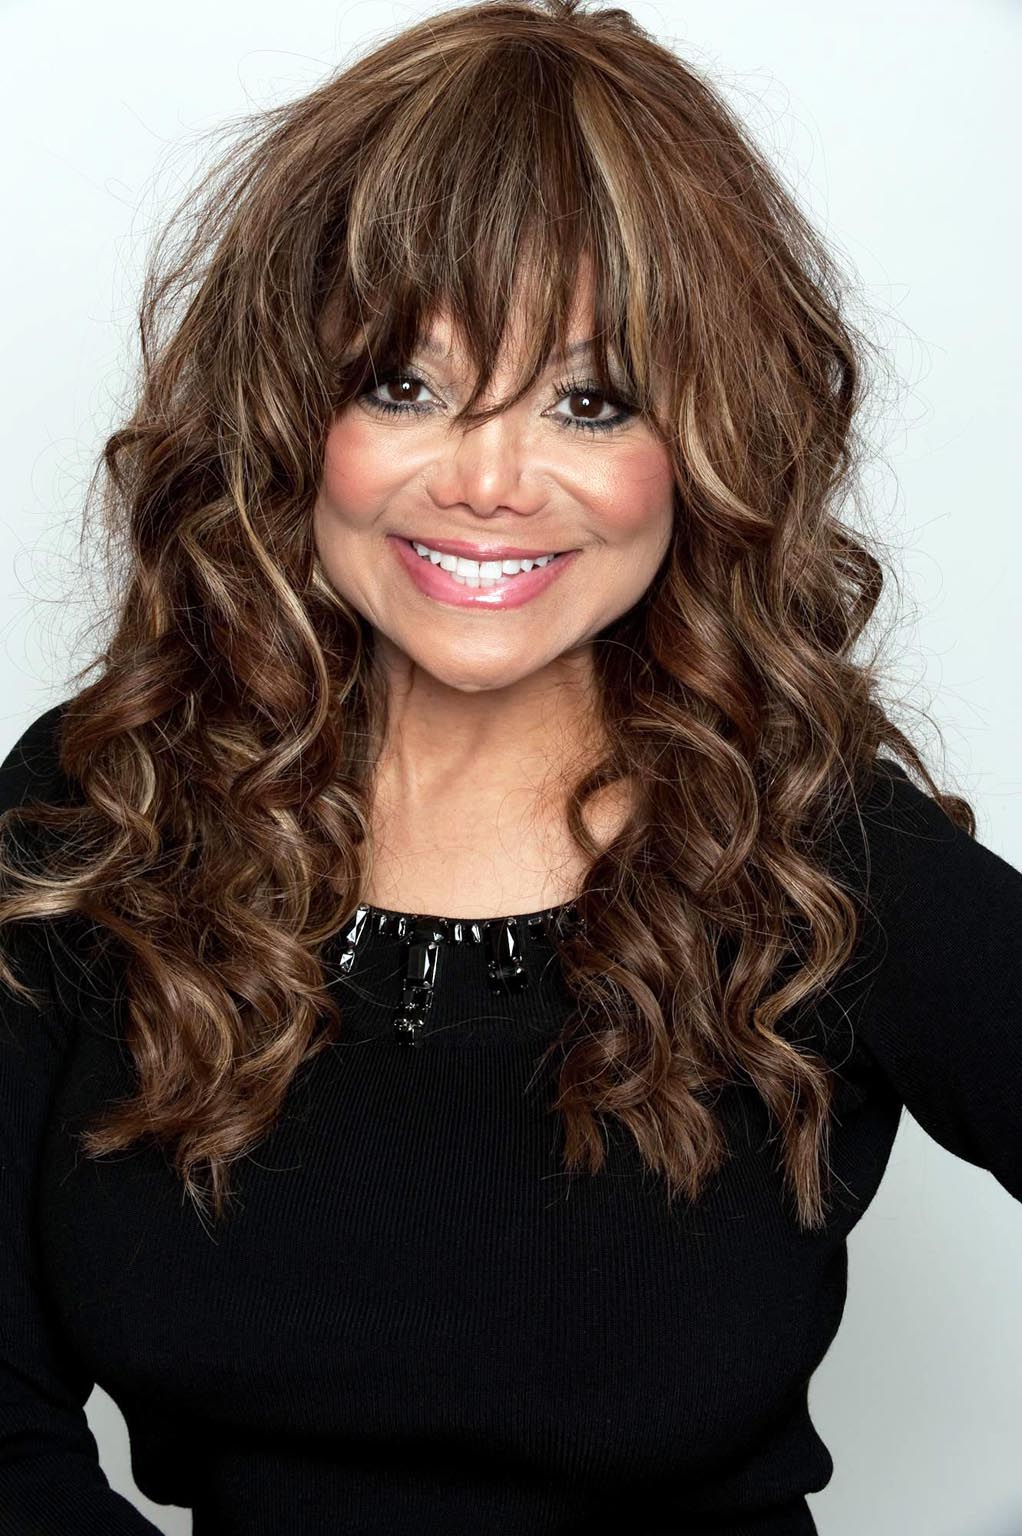 hair styles for big noses la toya jackson photo 12 of 14 pics wallpaper photo 3981